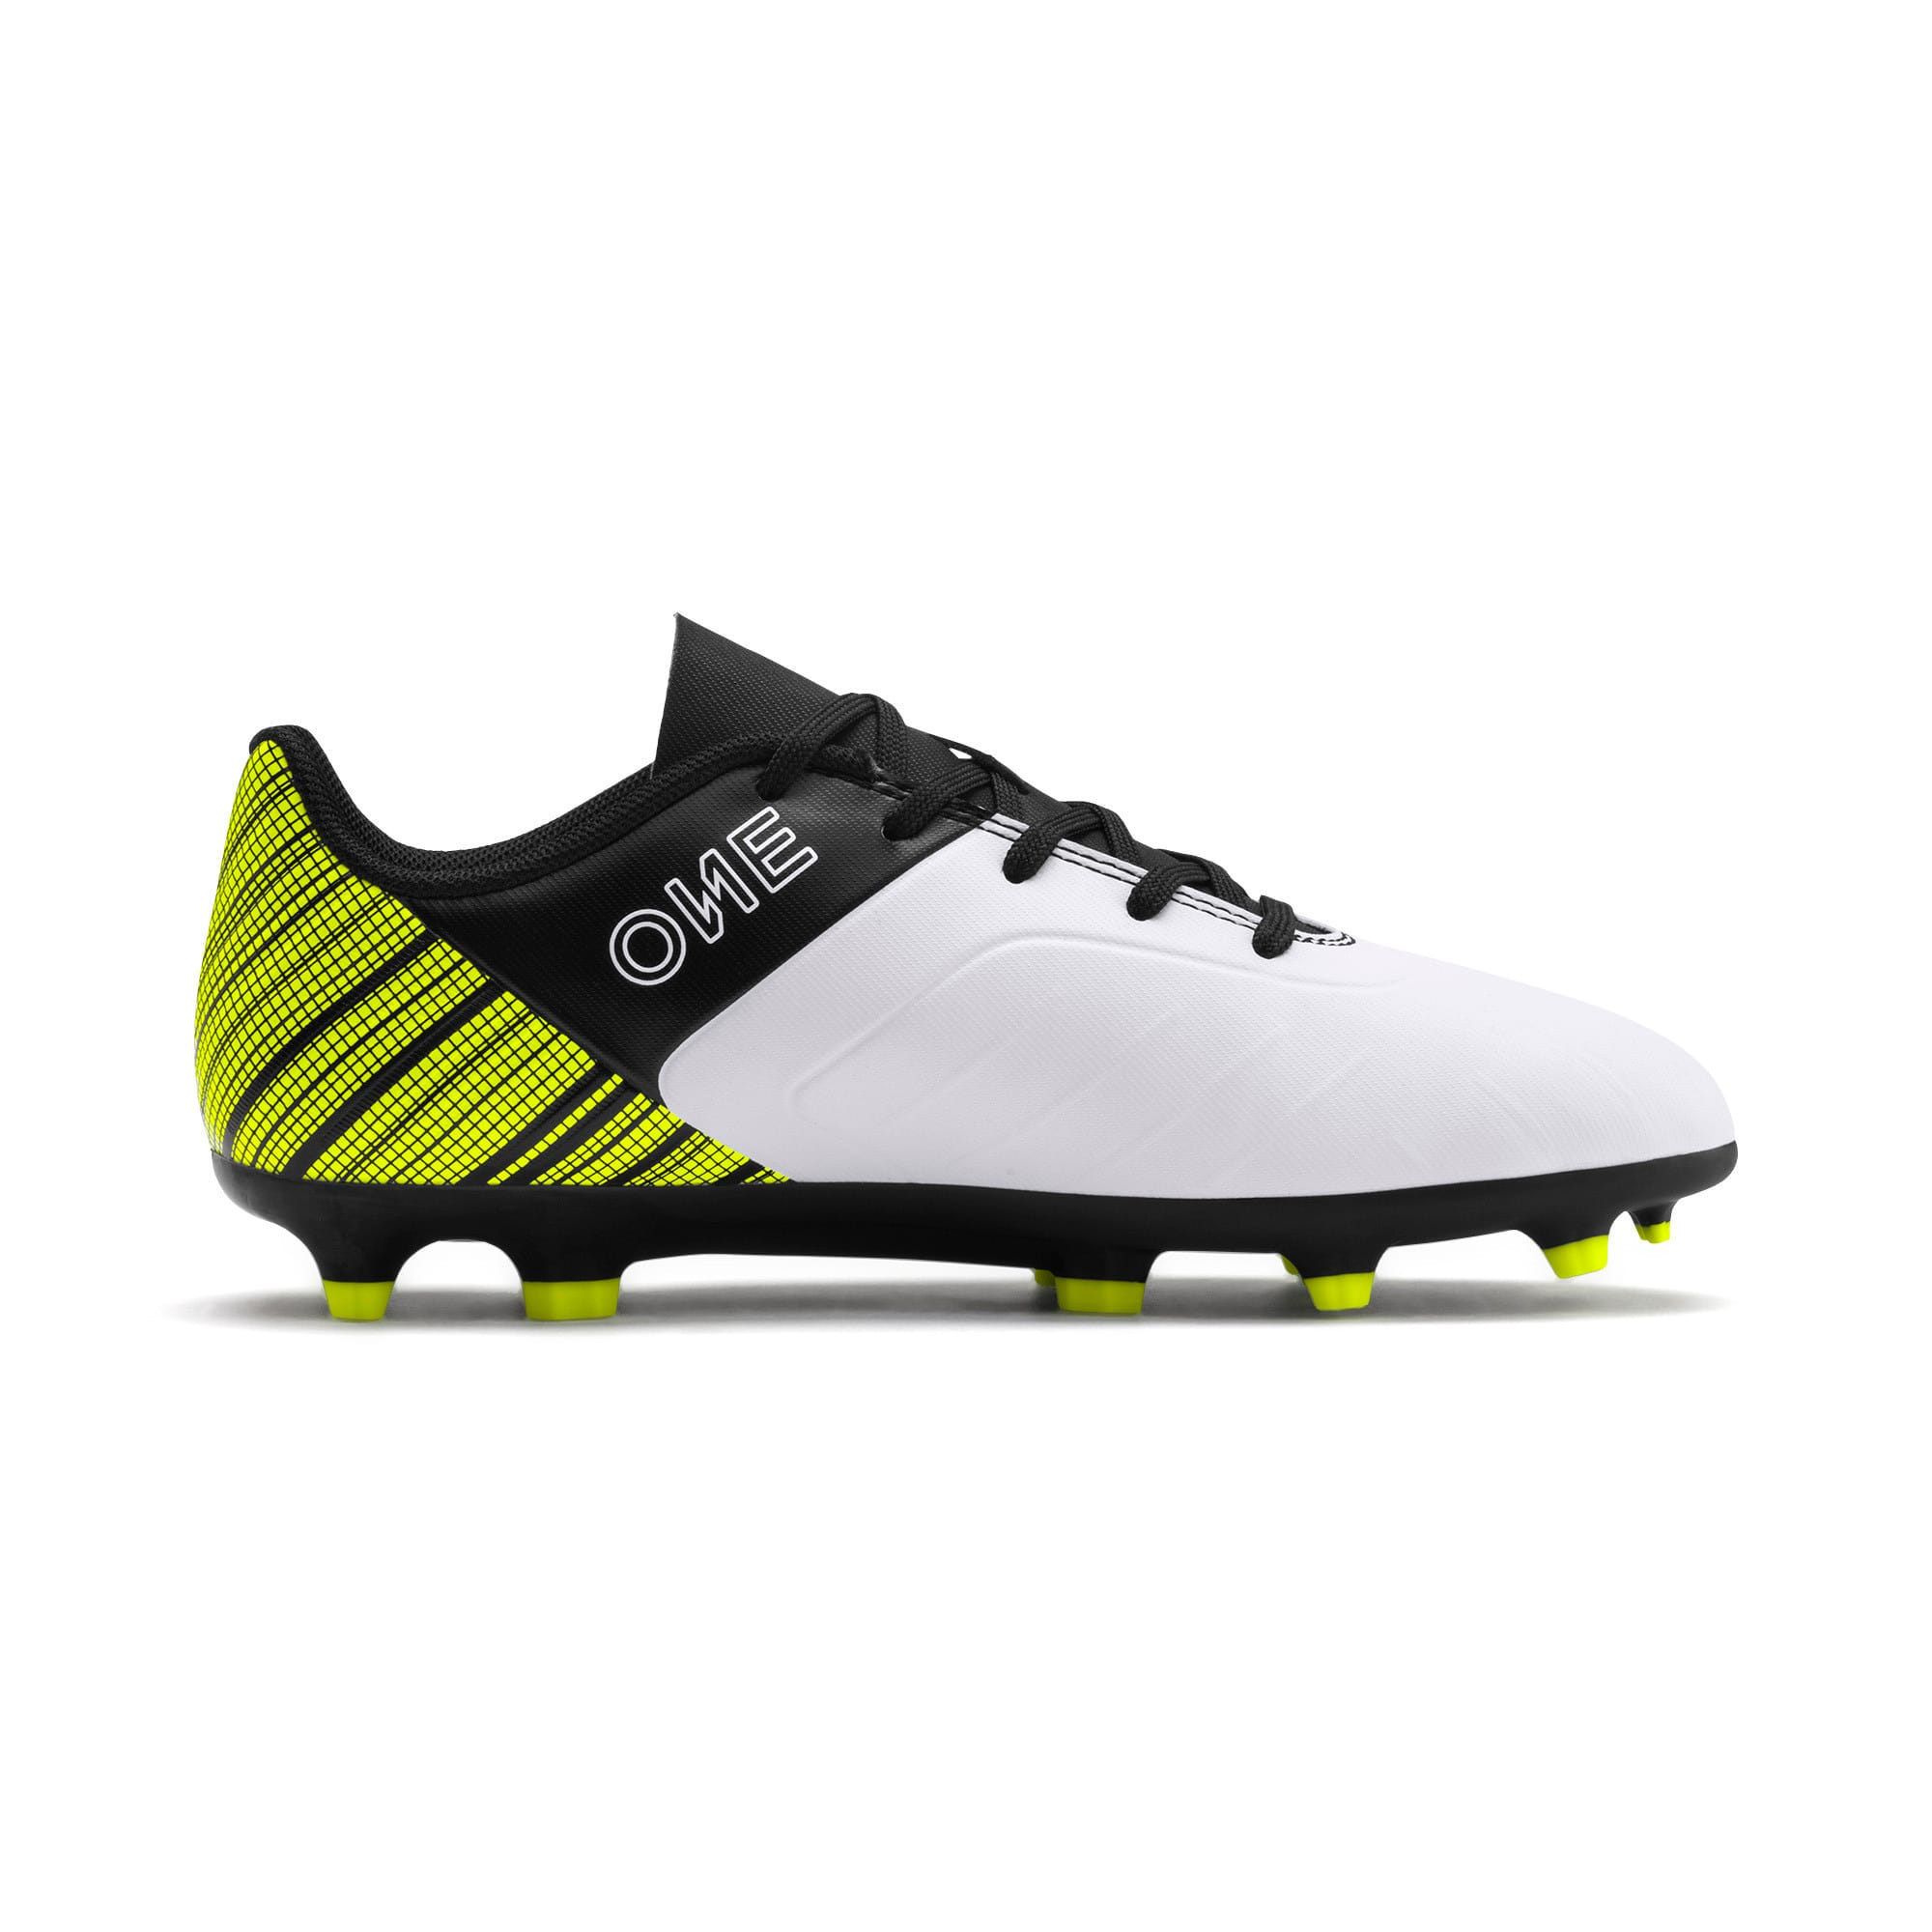 Thumbnail 5 of PUMA ONE 5.4 FG/AG Youth Fußballschuhe, White- Black-Yellow Alert, medium